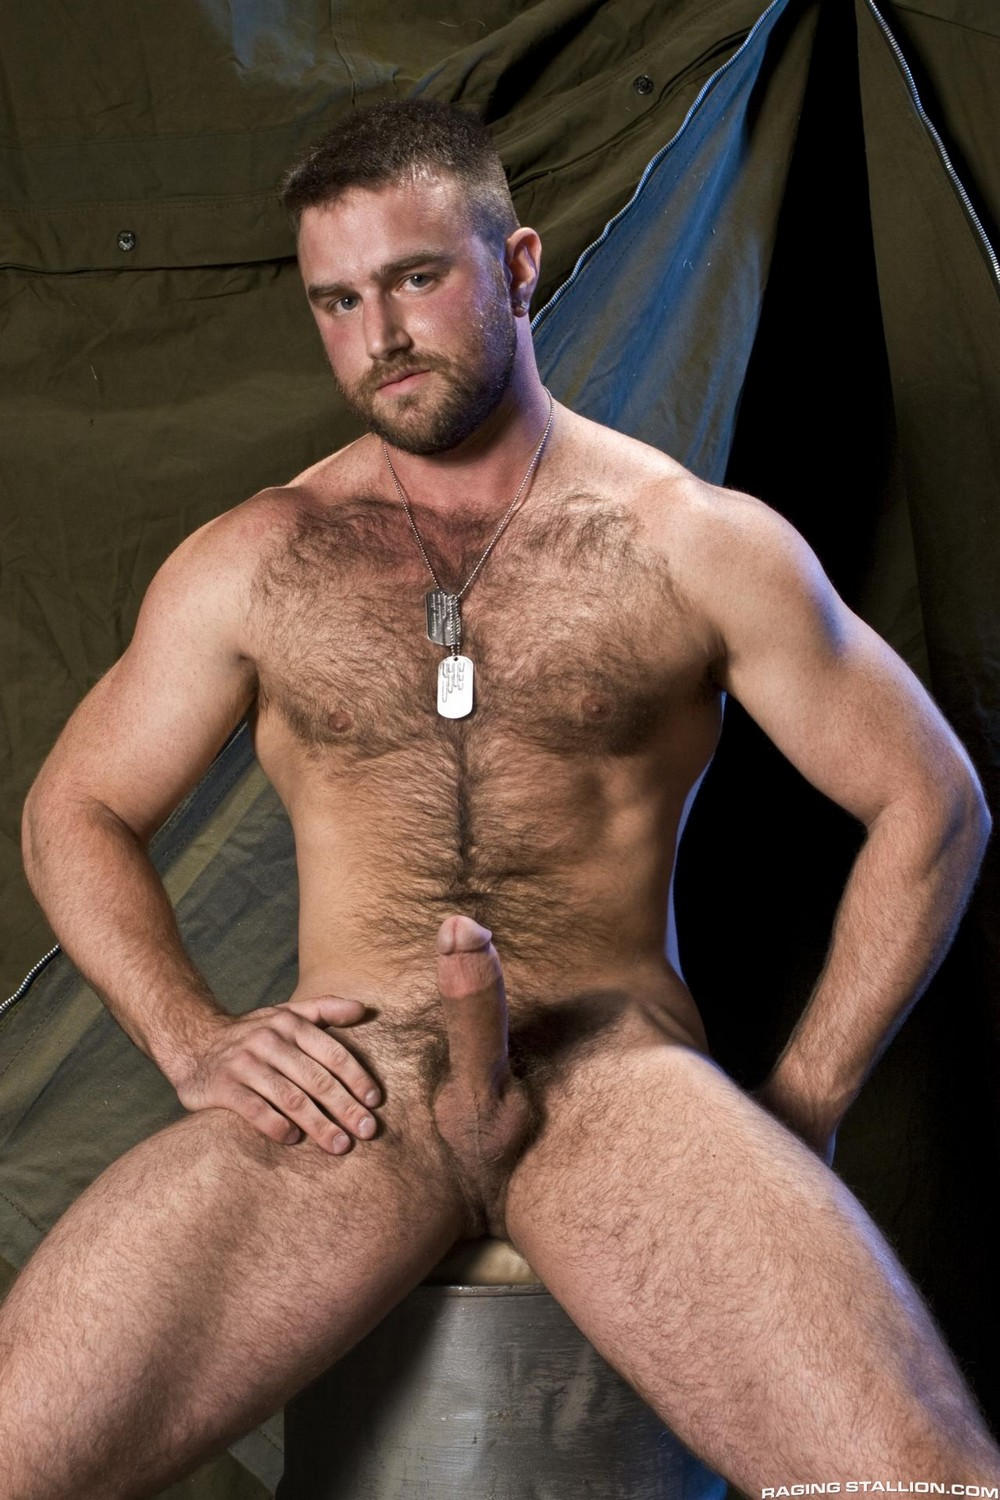 Visit Raging Stallion